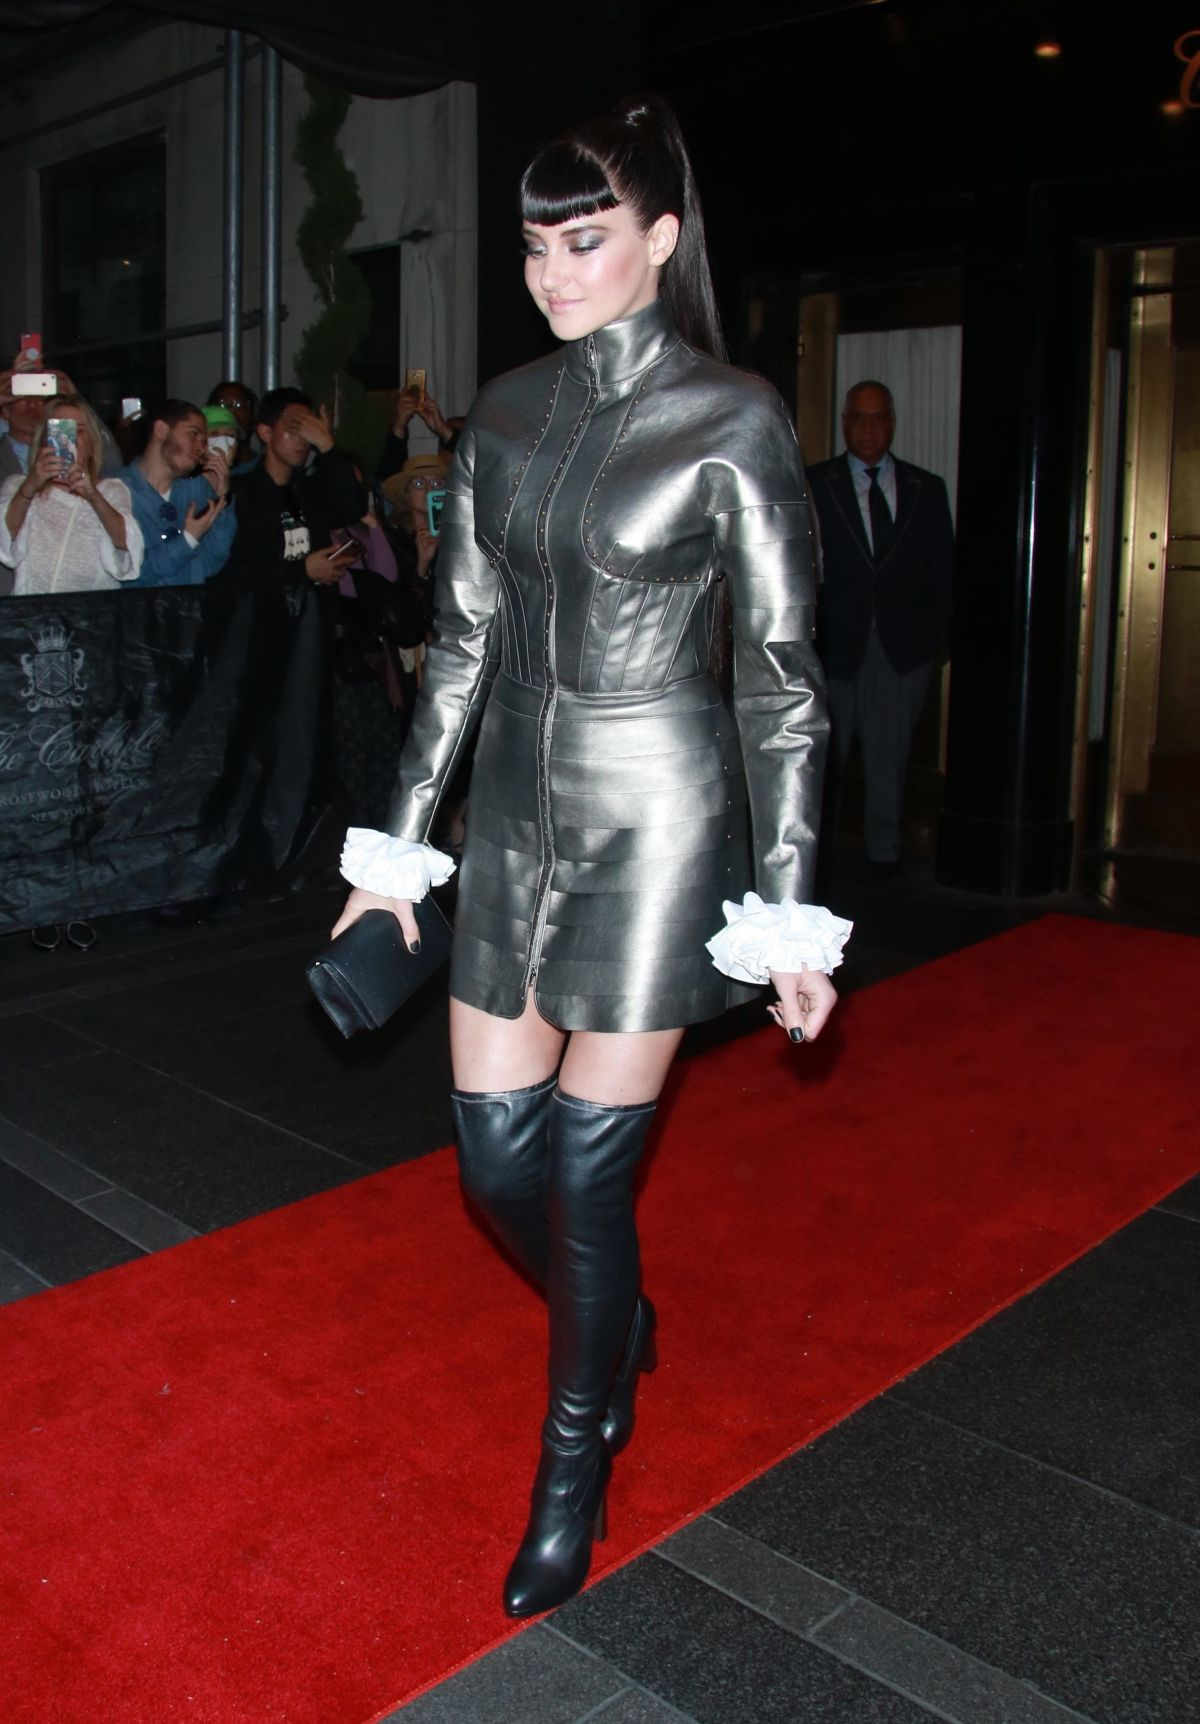 Shailene Woodley Leaves The Mark Hotel and heads to The Met Gala in